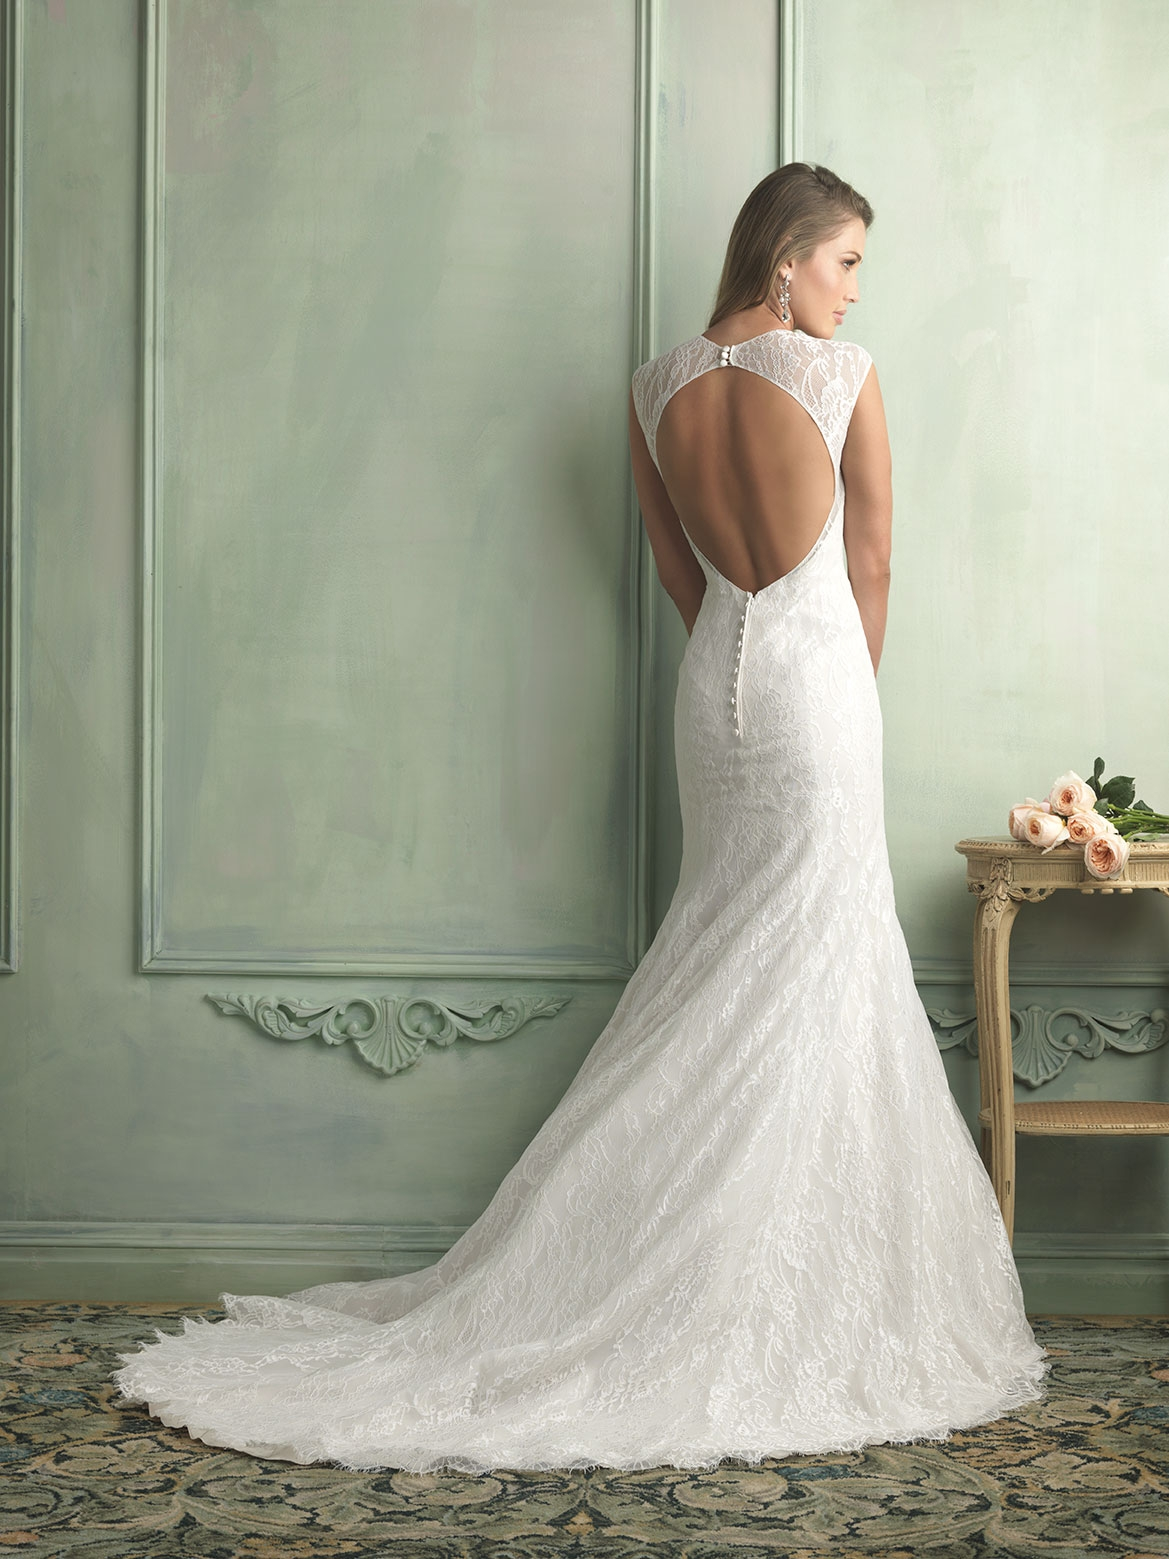 backless wedding dresses backless wedding dresses Wedding Dresses Backless